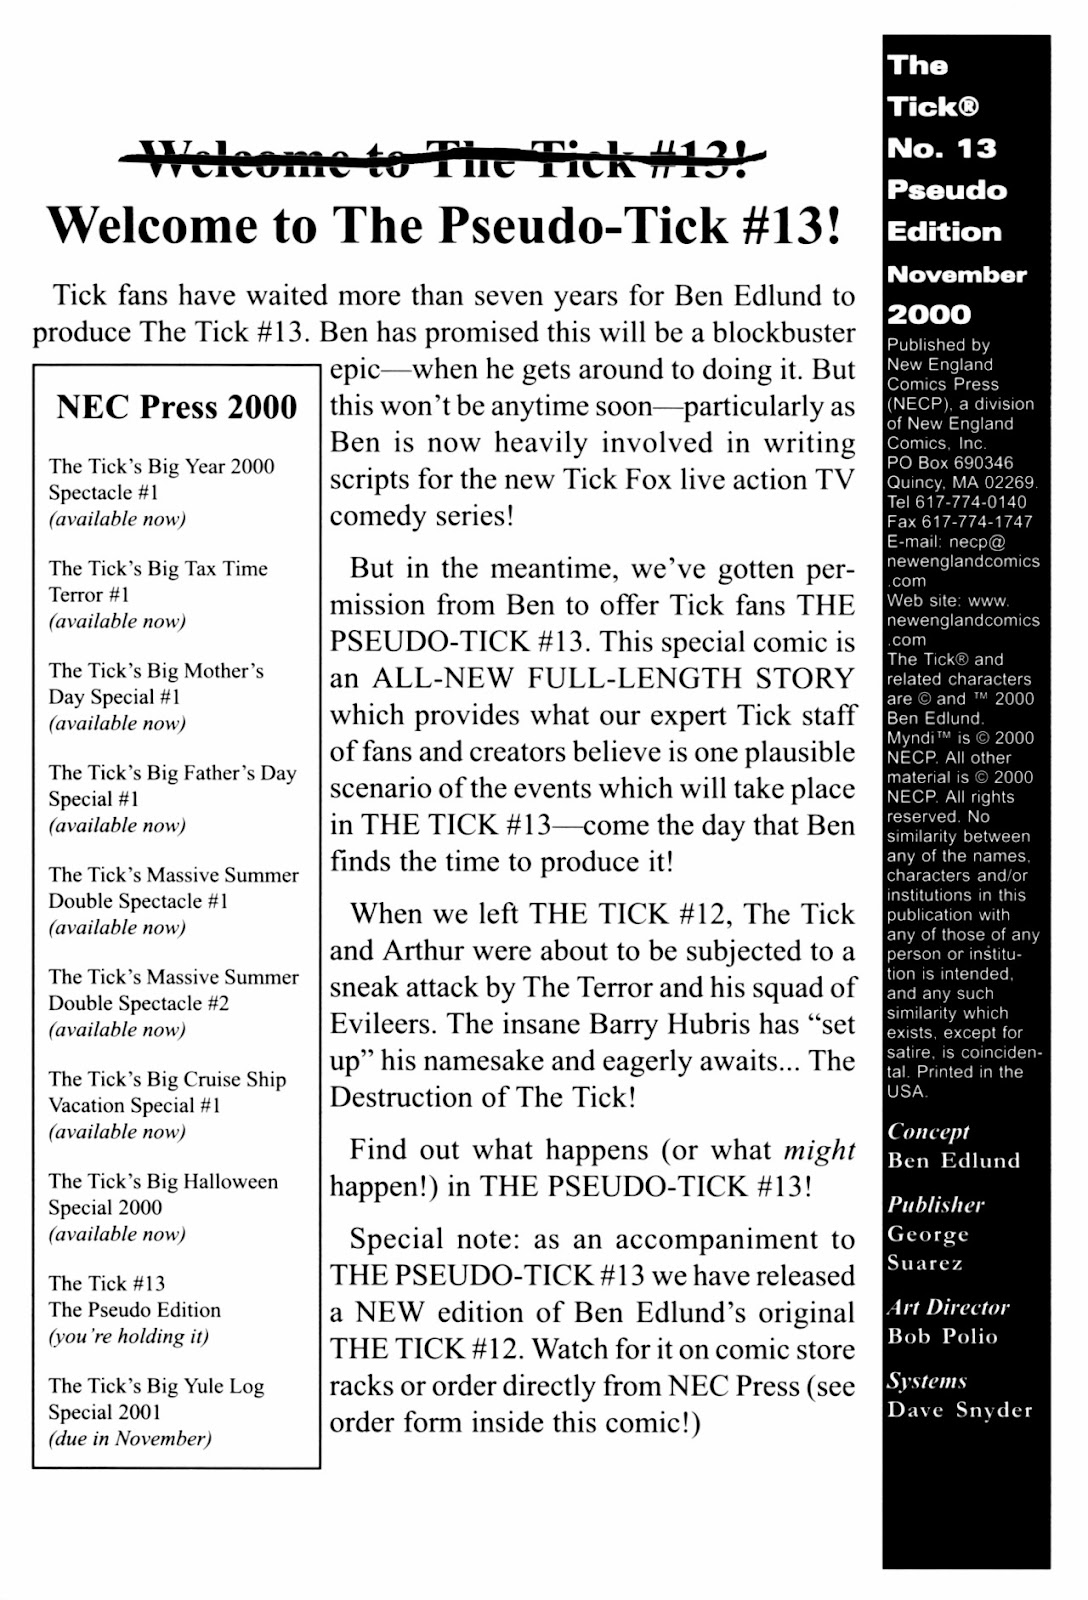 Read online The Tick comic -  Issue #13 - 2